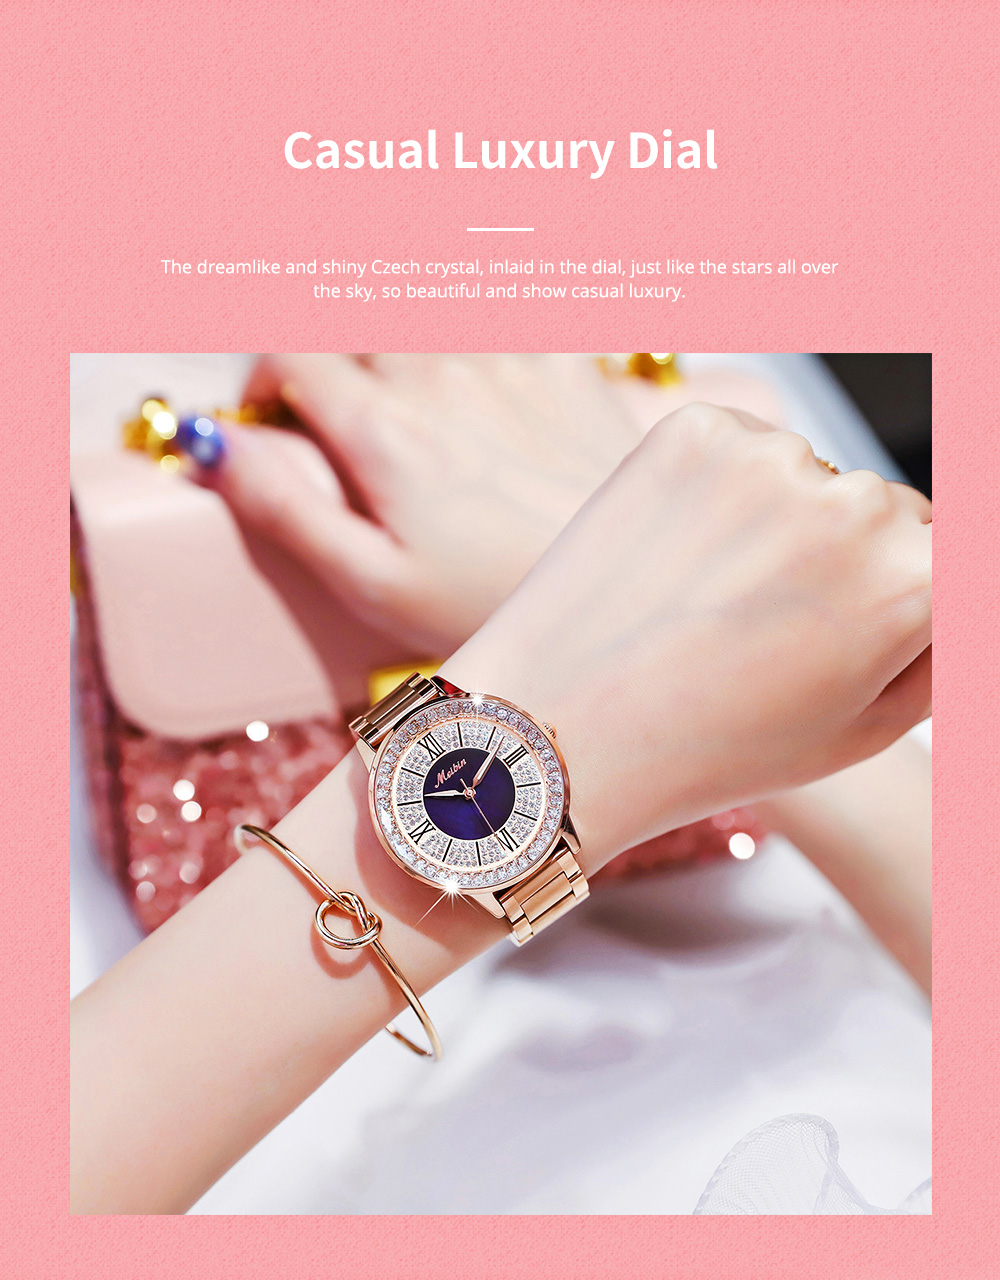 MEIBIN Multifunctional Watch for Women Luxury with Accented Crystal Dial and Steel Strap Waterproof 1